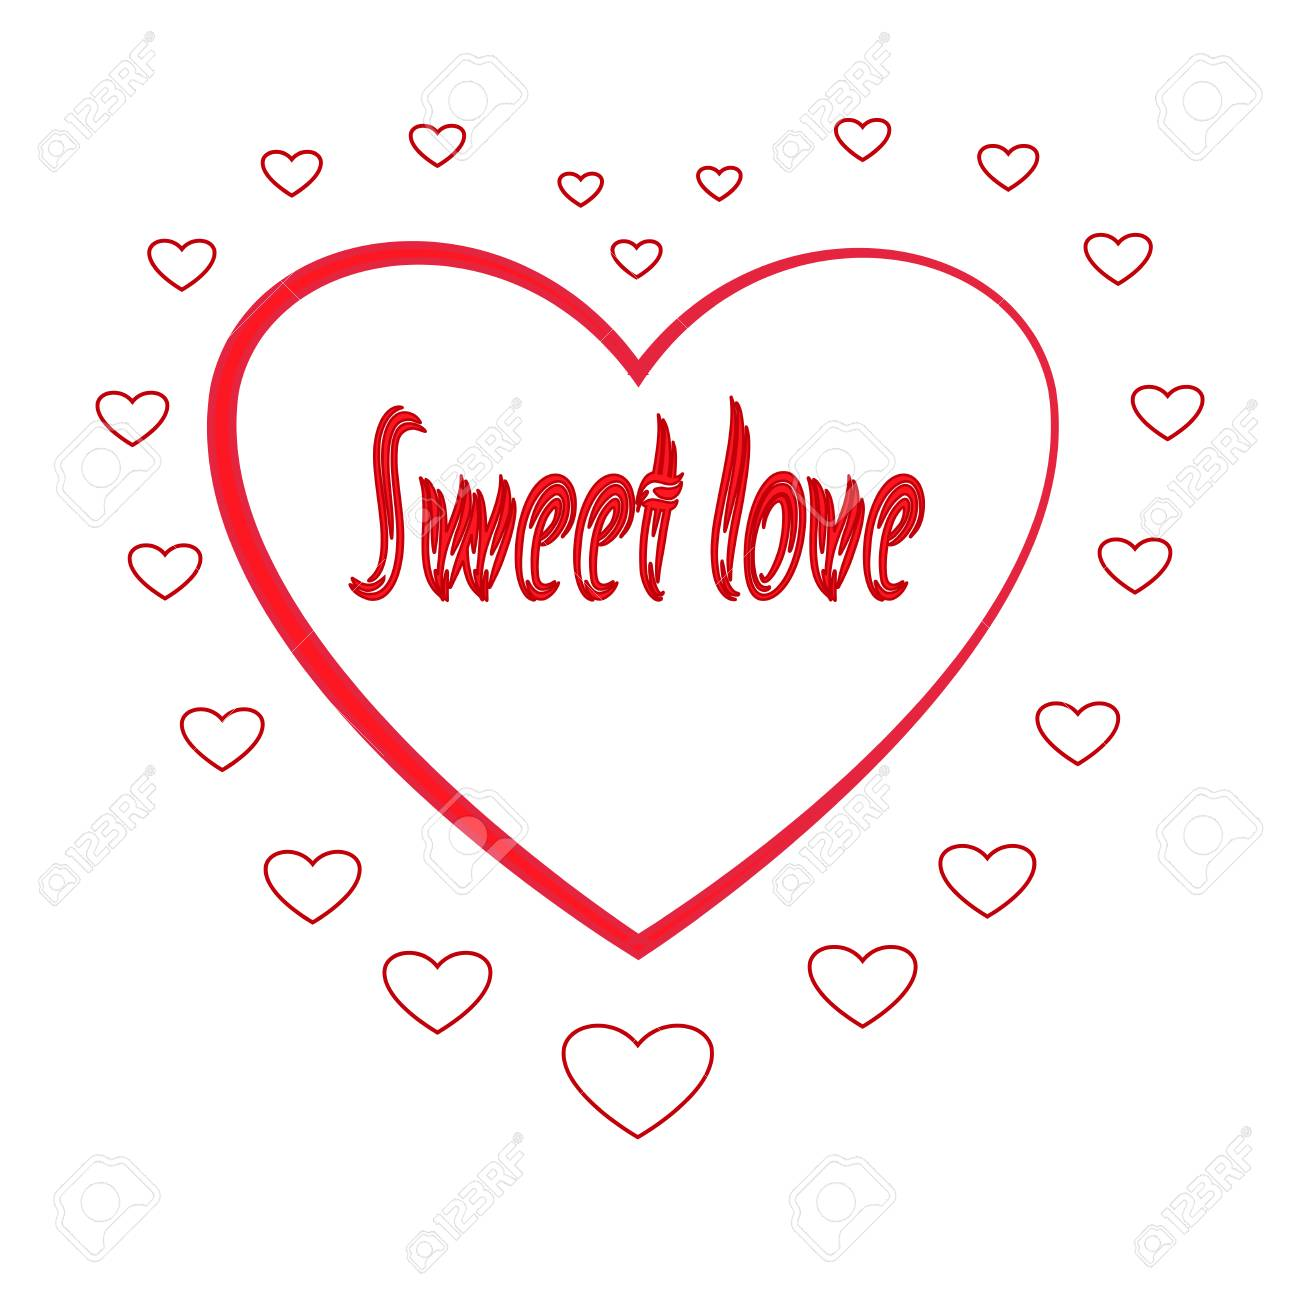 Great Heart In Silhouette Heart. Red Sign With Quote Sweet Love On White  Background. Romantic